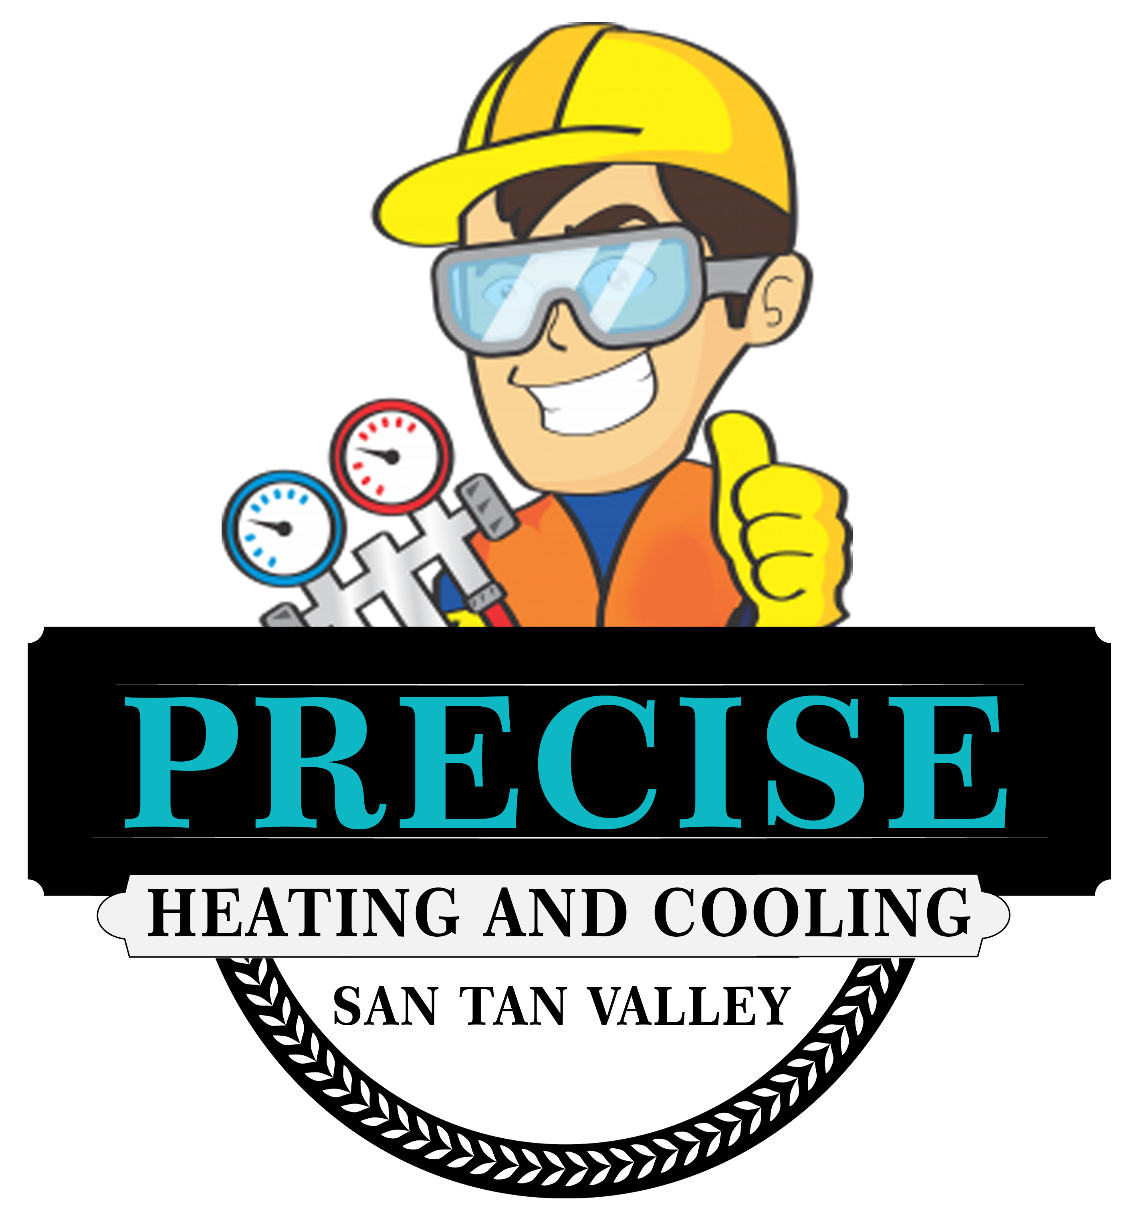 Hire Our Technicians 24 Hours A Day 7 Days A Week For Quick And Reliable Service In San Tan Valley Ac Repair San Tan Valley Az Includes All Heating And Coolin